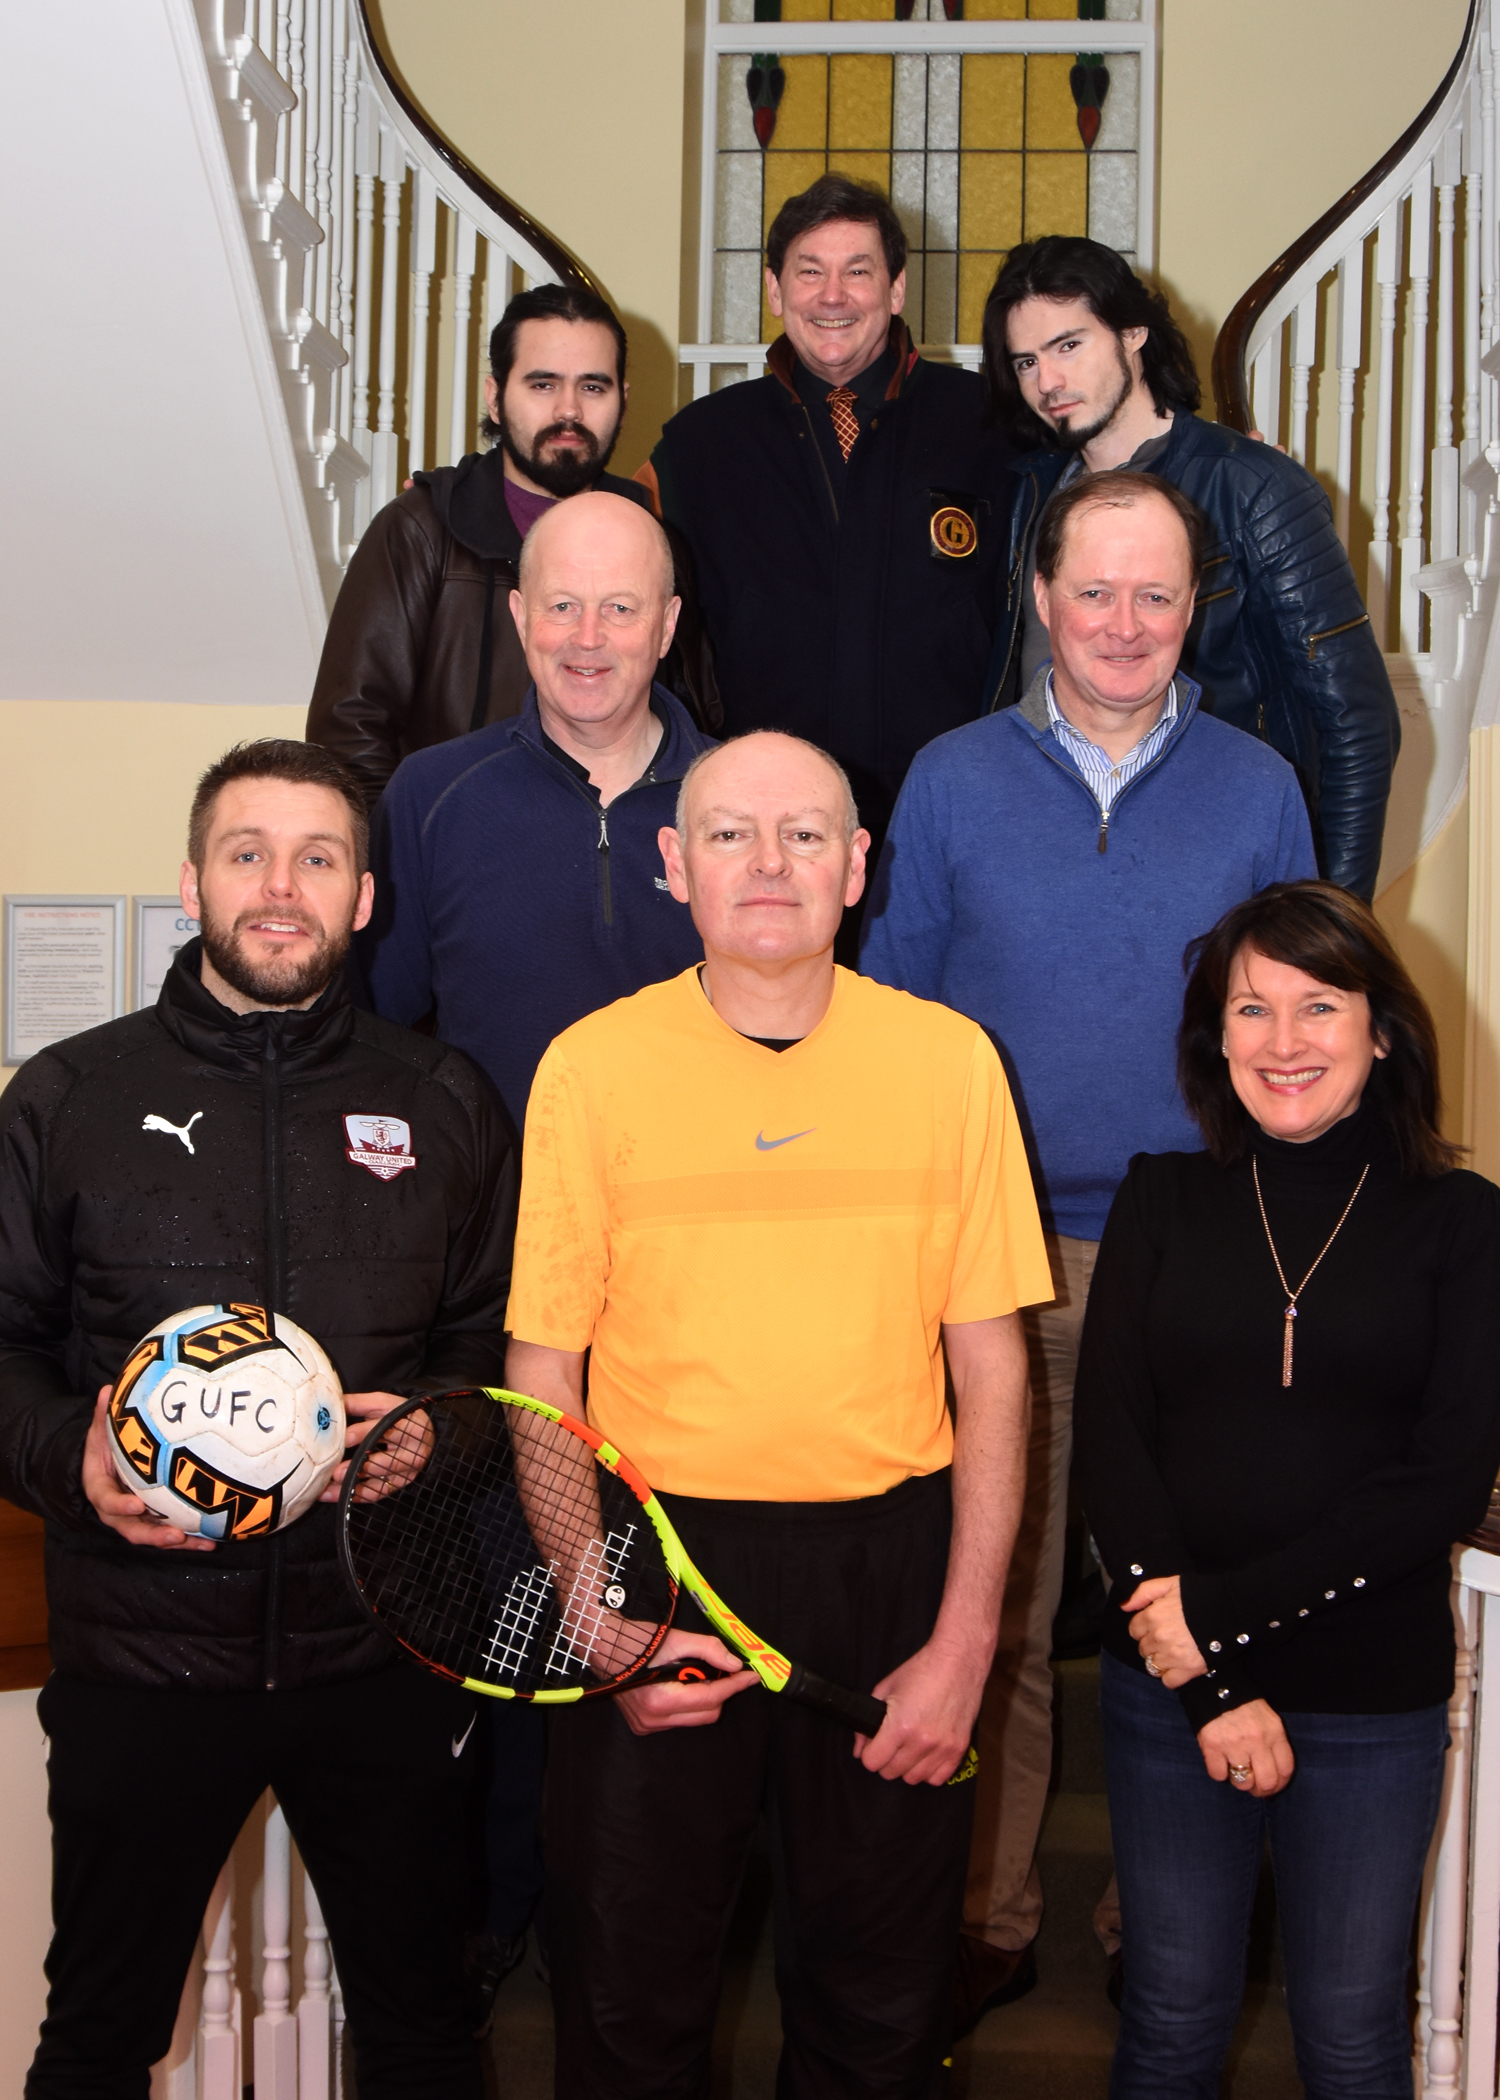 Front l-r: Alan Murphy, Galway United, Mike Geraghty, Tennis Coach, Breda Crehan-Roche, CEO, Ability West  Middle l-r: Ray Kelly, Chairman, Ability West, Richard Hughes, Hughes Opticians  Back l-r: Guillermo Lara Franco, BARDON, Michael Duke, Community Development Officer, Ability West, Cesar Lara, BARDON